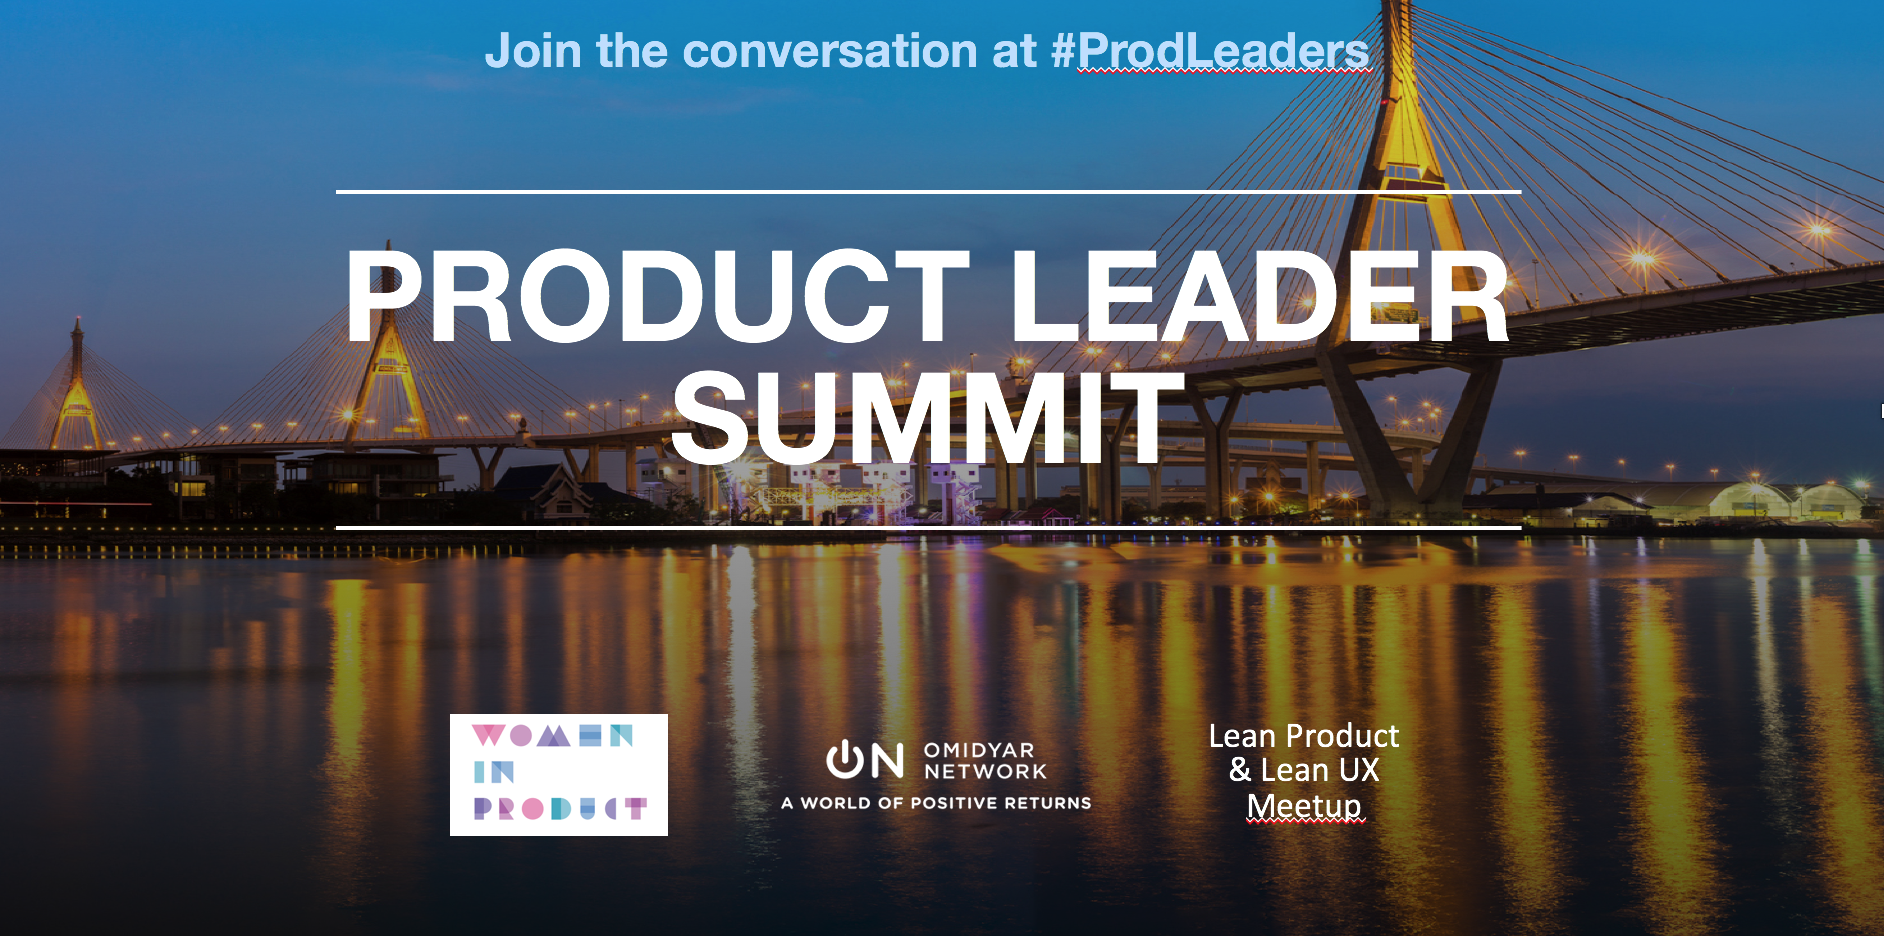 Ha Nguyen: Product Leader Summit Welcome